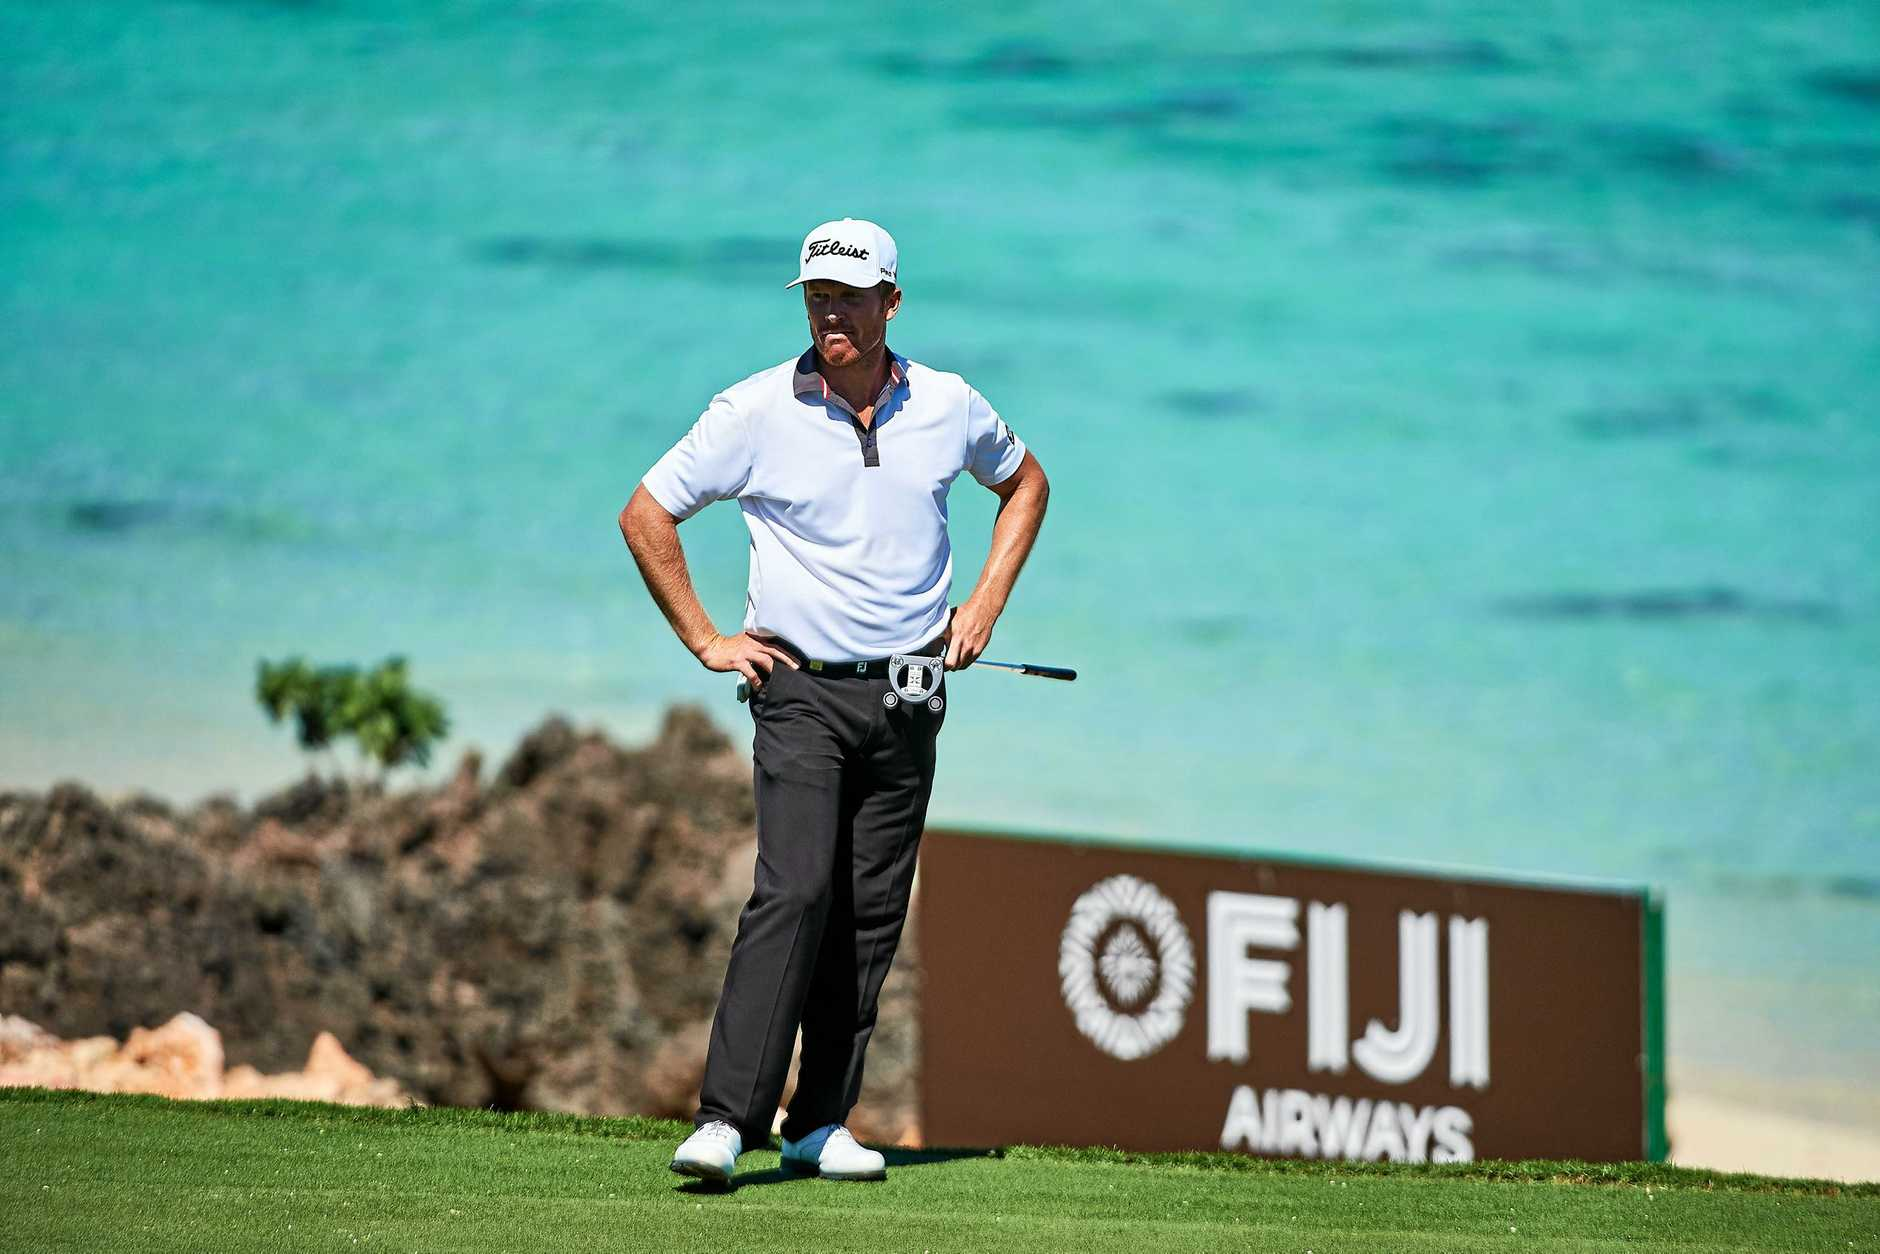 Andrew Dodt during his opening round today at the Fiji International.